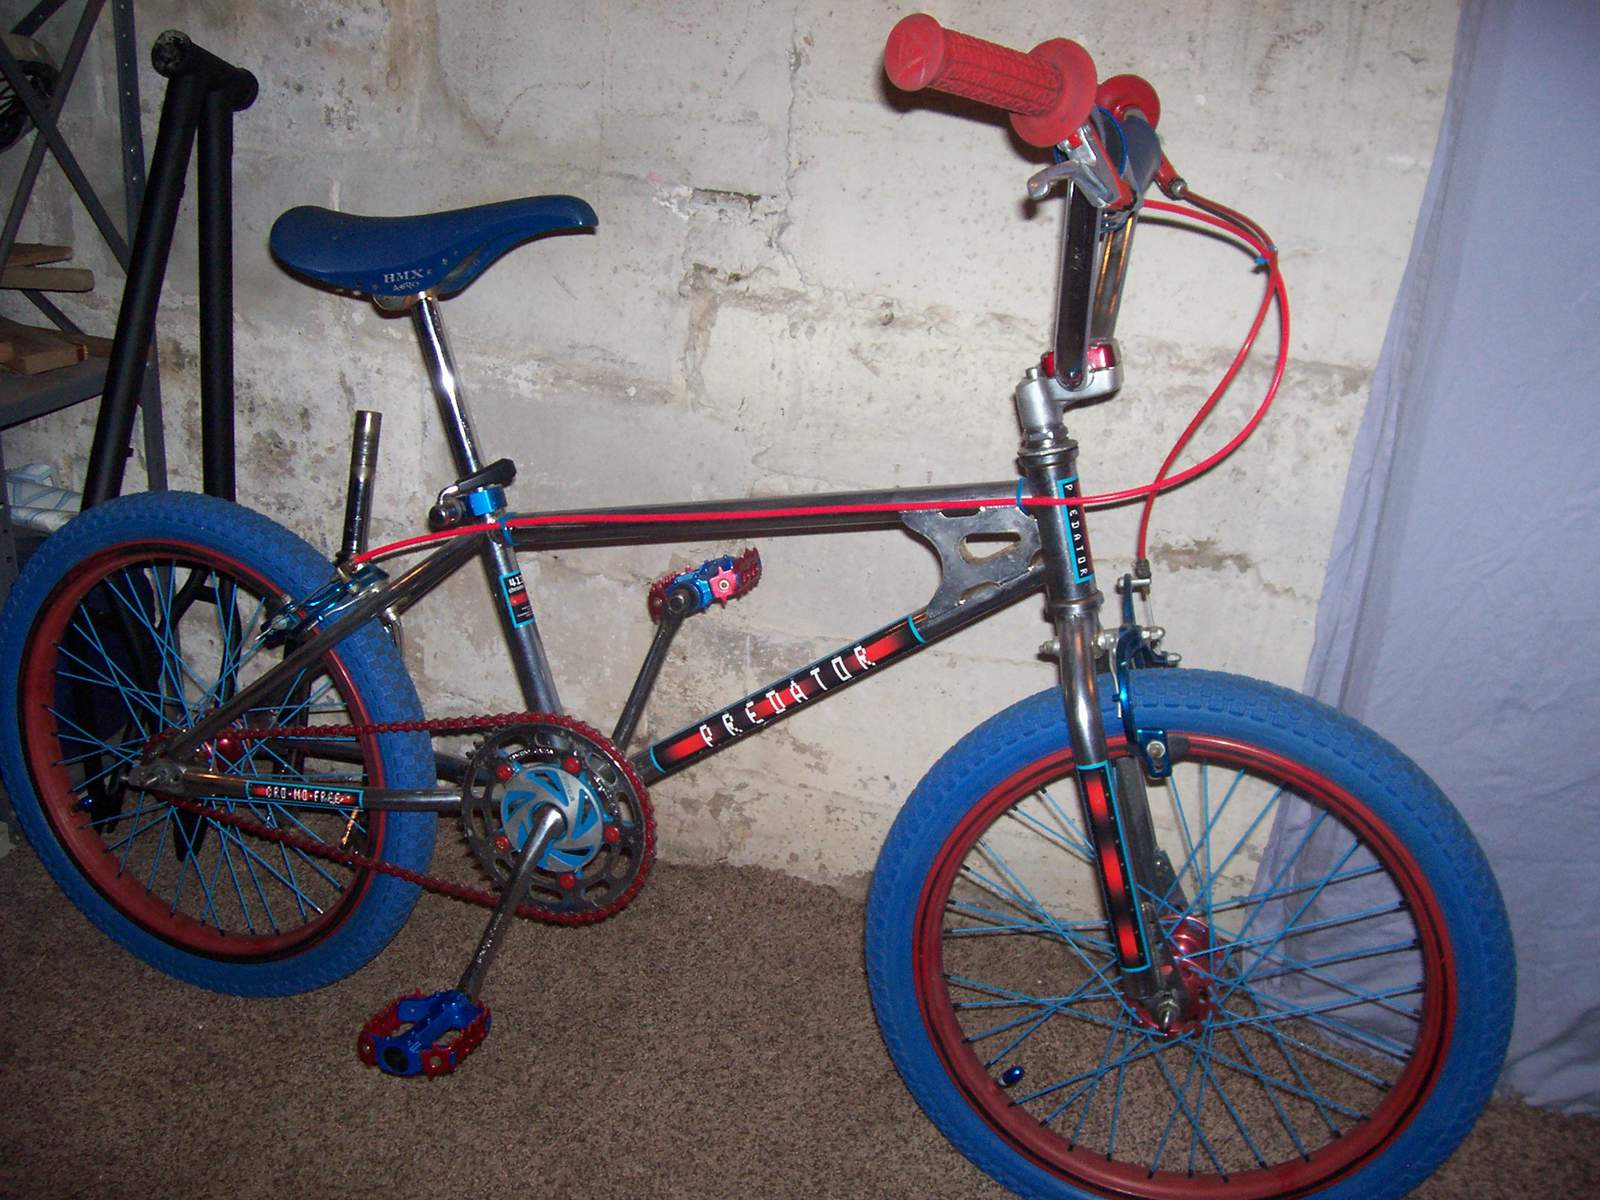 https://s3.amazonaws.com/uploads.bmxmuseum.com/user-images/61851/100_957659a3ac0453.jpg